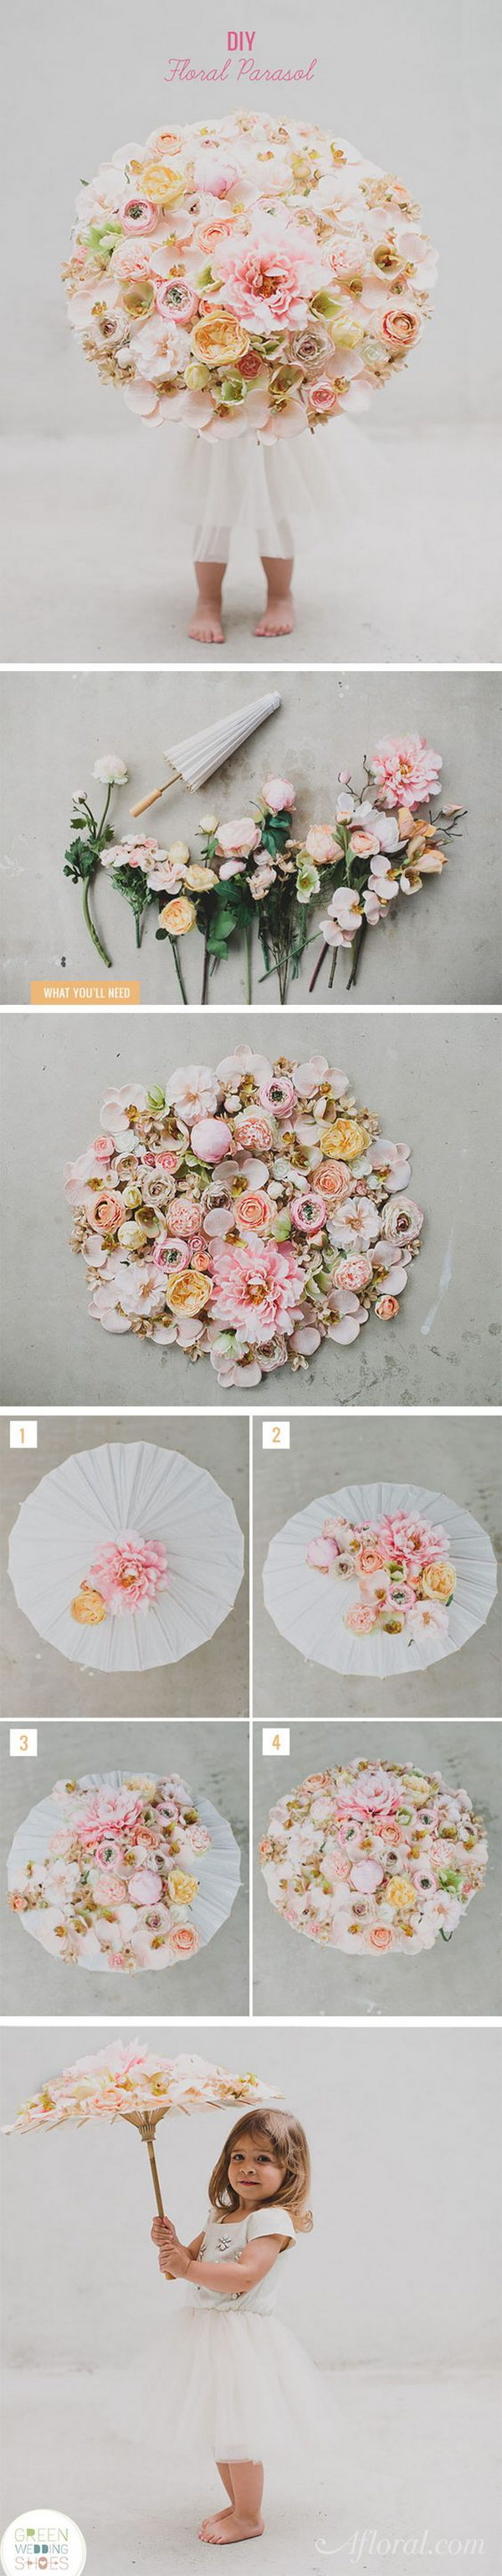 Awesome diy wedding centerpiece ideas tutorials